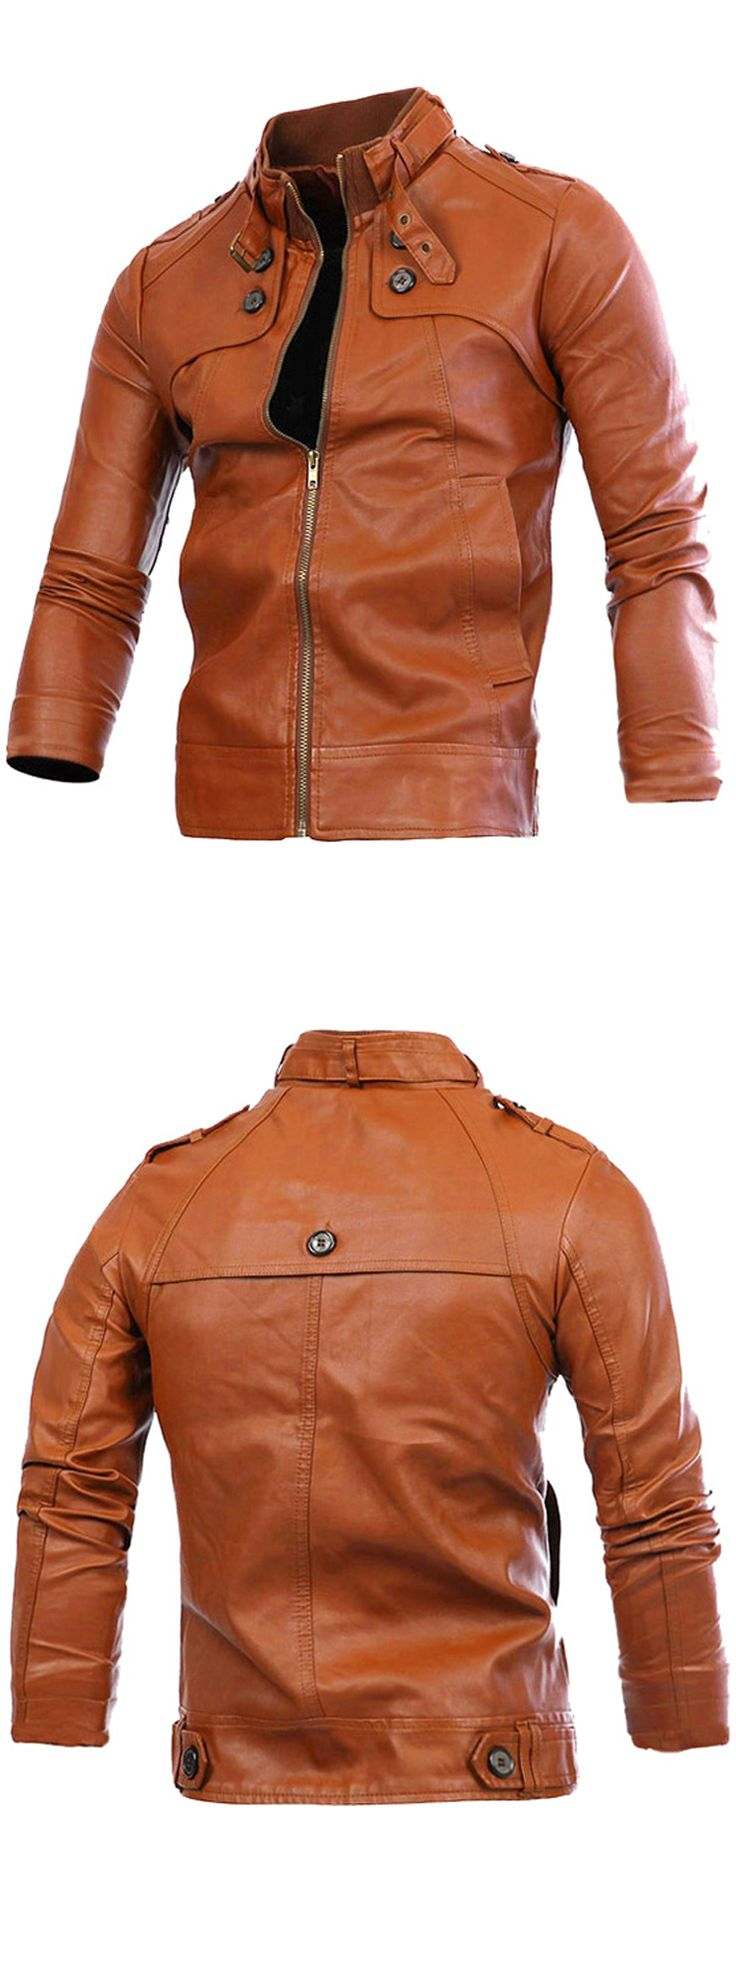 Slimming Rib Spliced Button and Epaulet Design Stand Collar Long Sleeves Locomotive PU Leather Jacket For Men